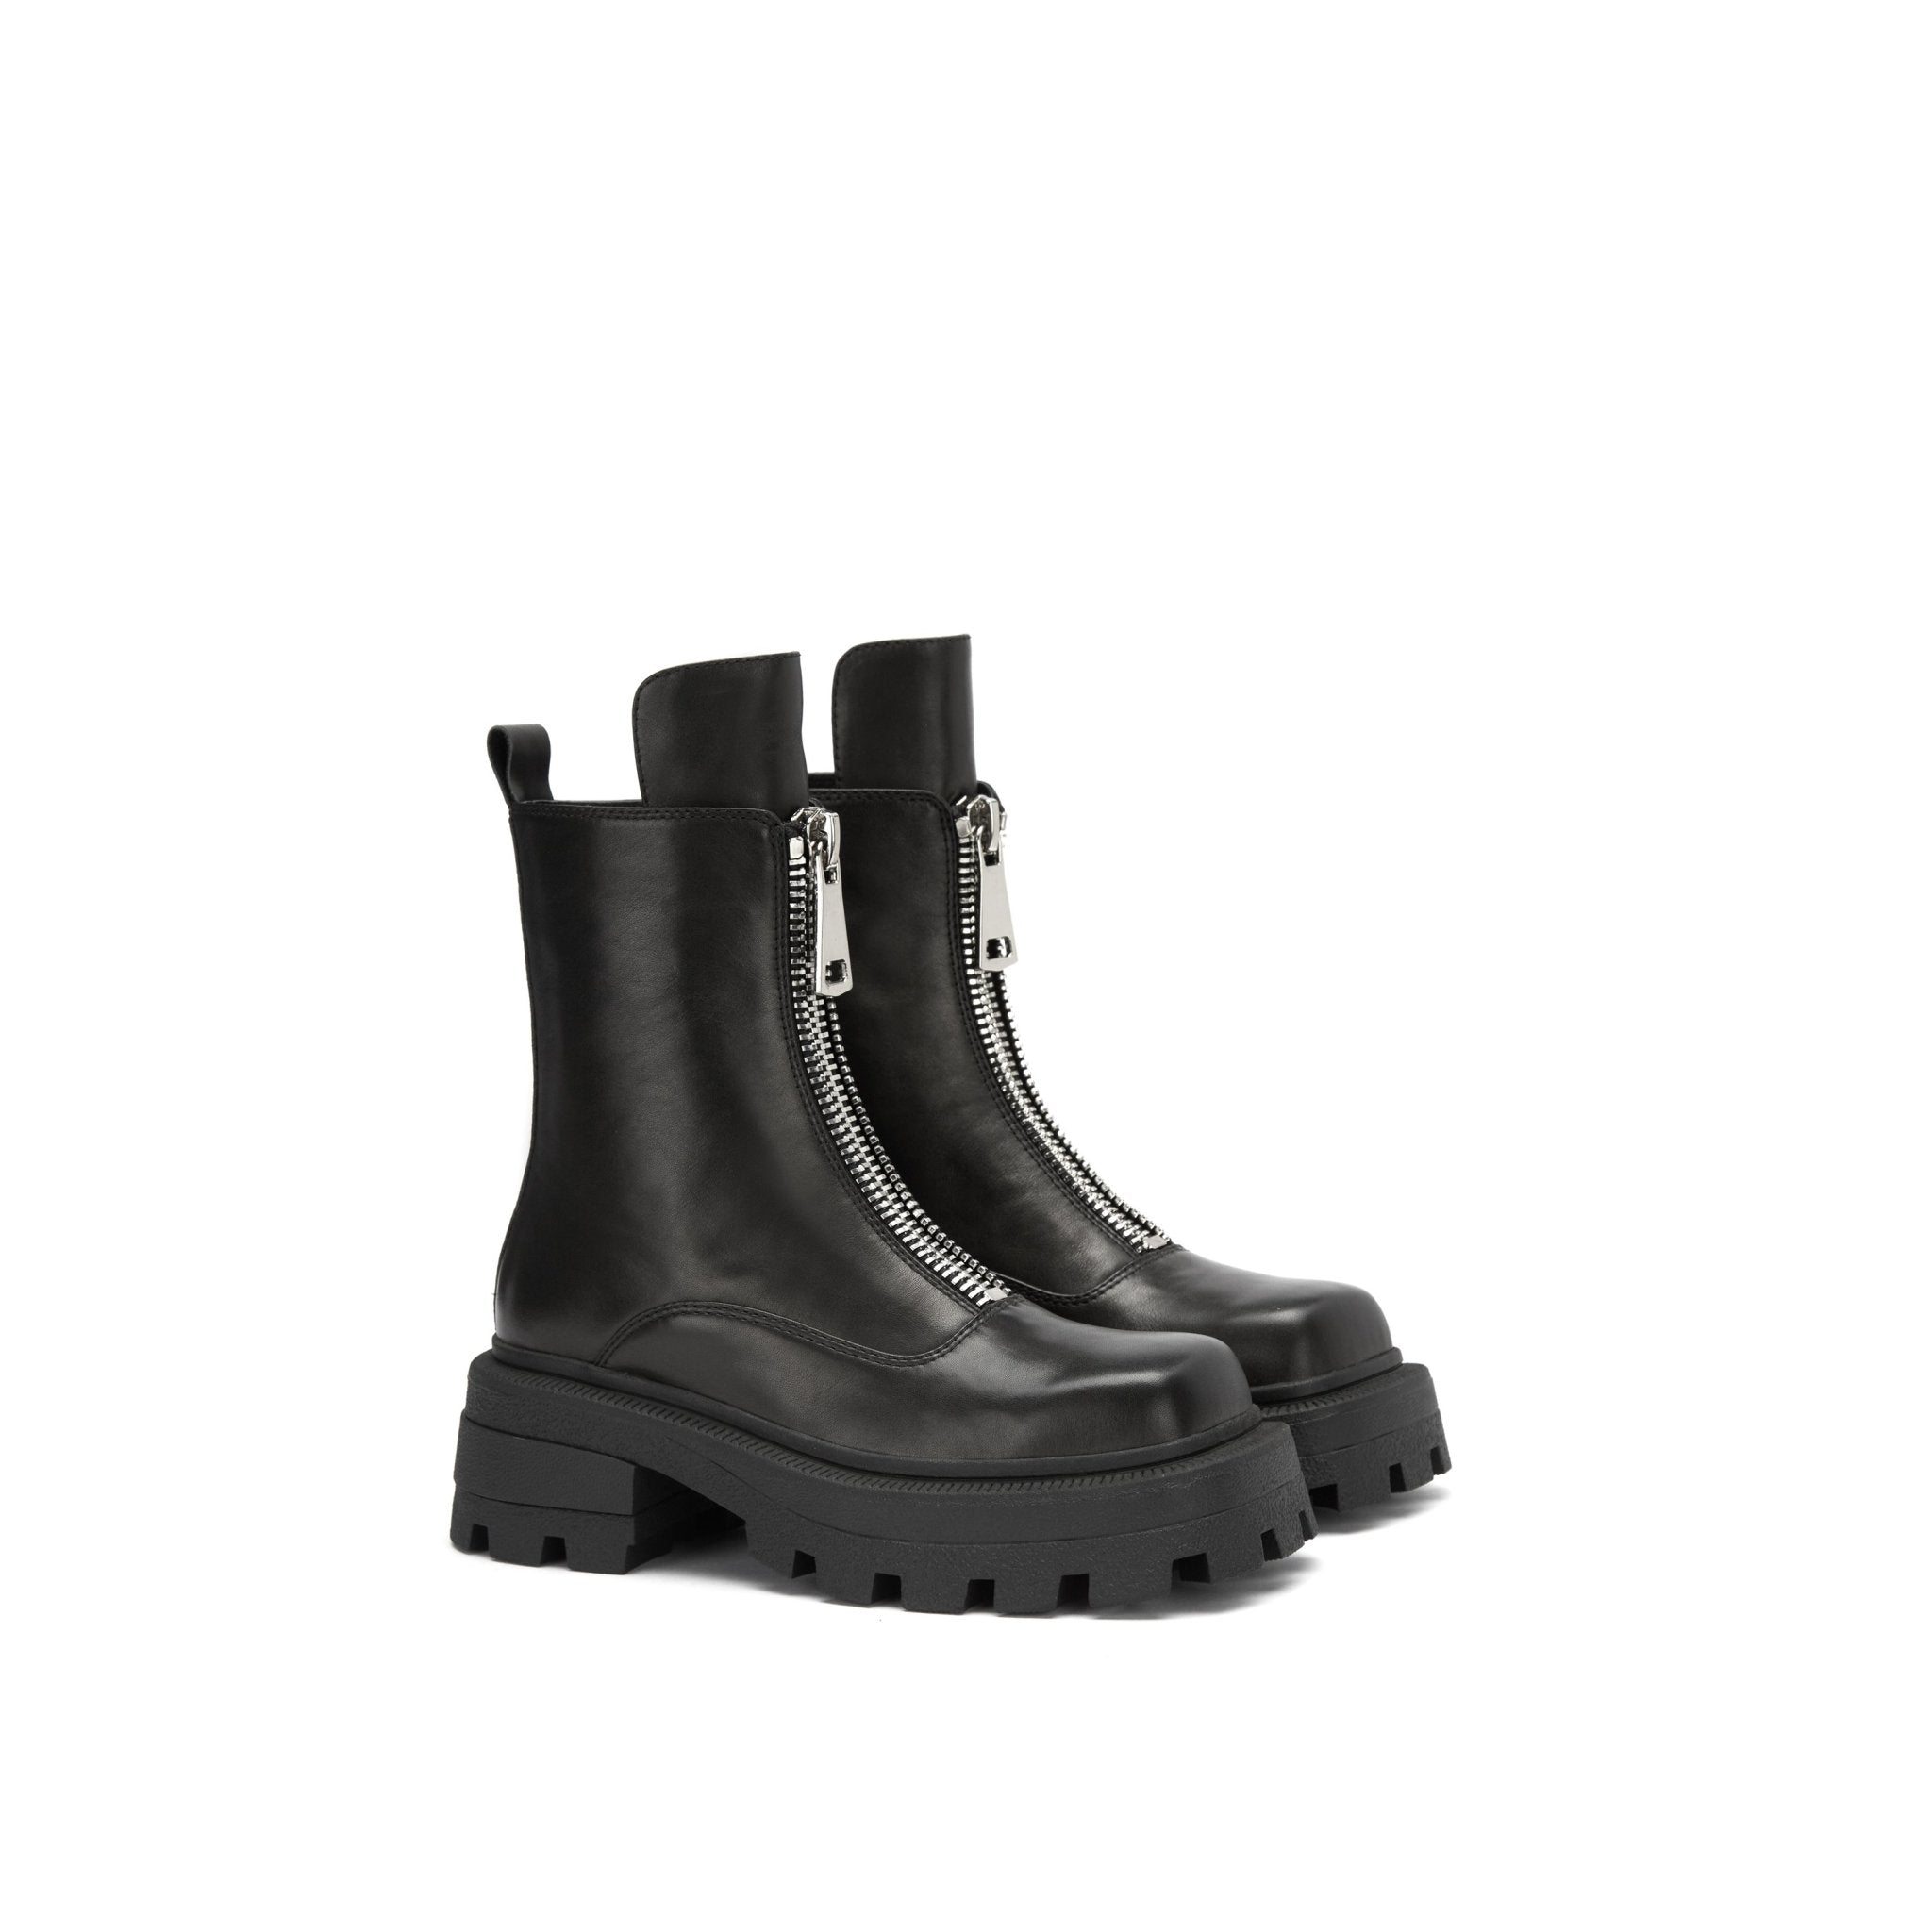 LOST IN ECHO Black Square Toe Zip Boots | MADA IN CHINA